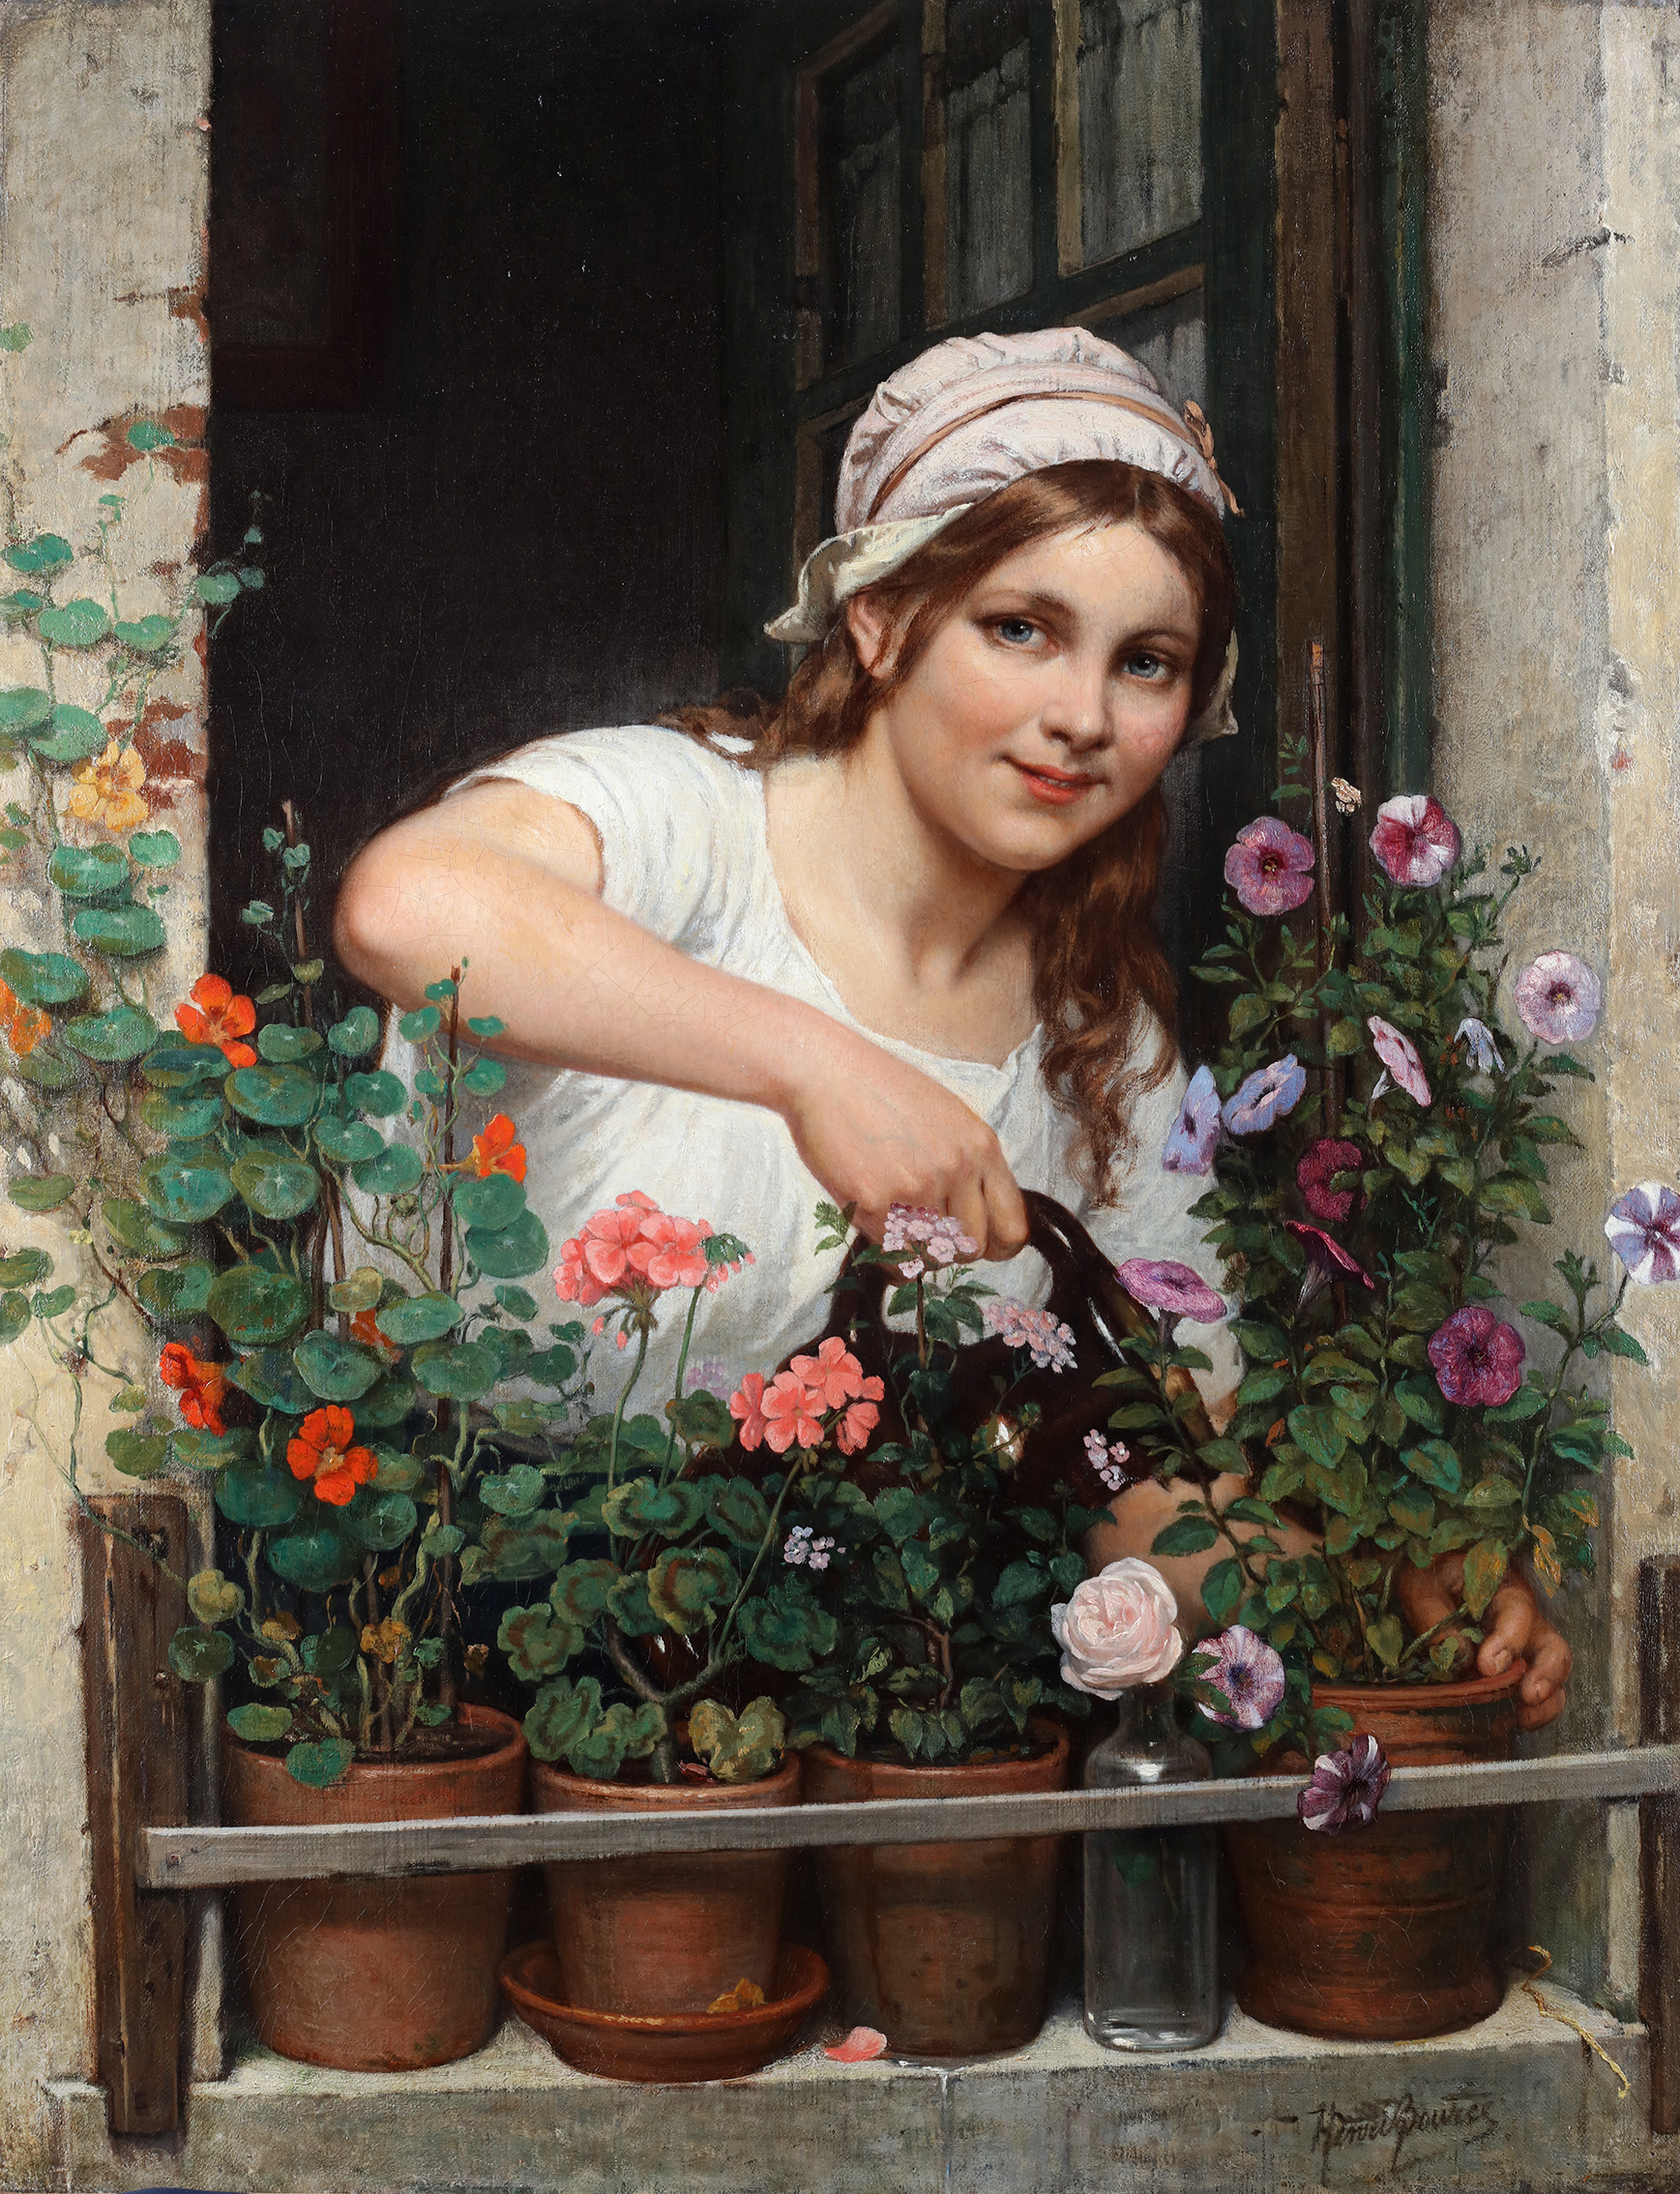 Young girl watering her flowers